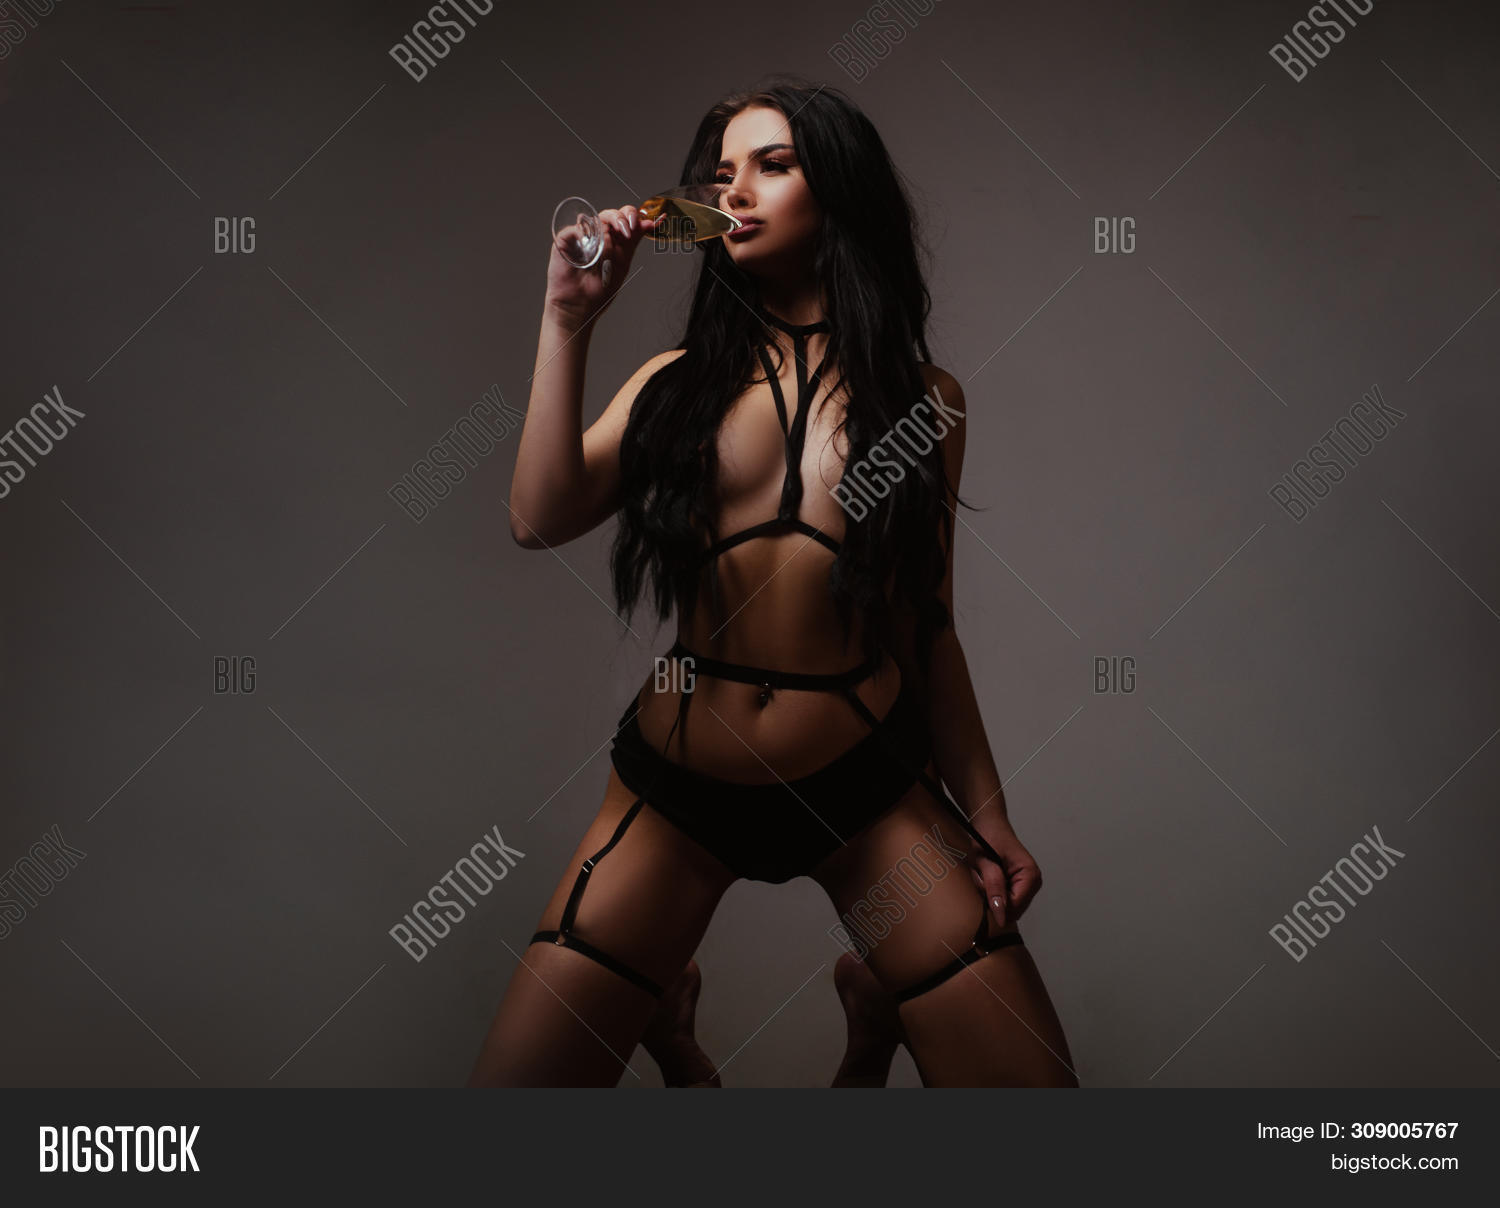 alcohol,bdsm,bikini,black,bondage,celebrate,champagne,concept,confident,darkness,desire,dominance,dominant,dressed,drink,erotic,female,foreplay,girl,lingerie,love,lover,lustful,model,naughty,party,passion,playful,pretty,rape,ropes,seduce,seductive,sensual,sex,sexual,sexy,slim,temptress,tied,woman